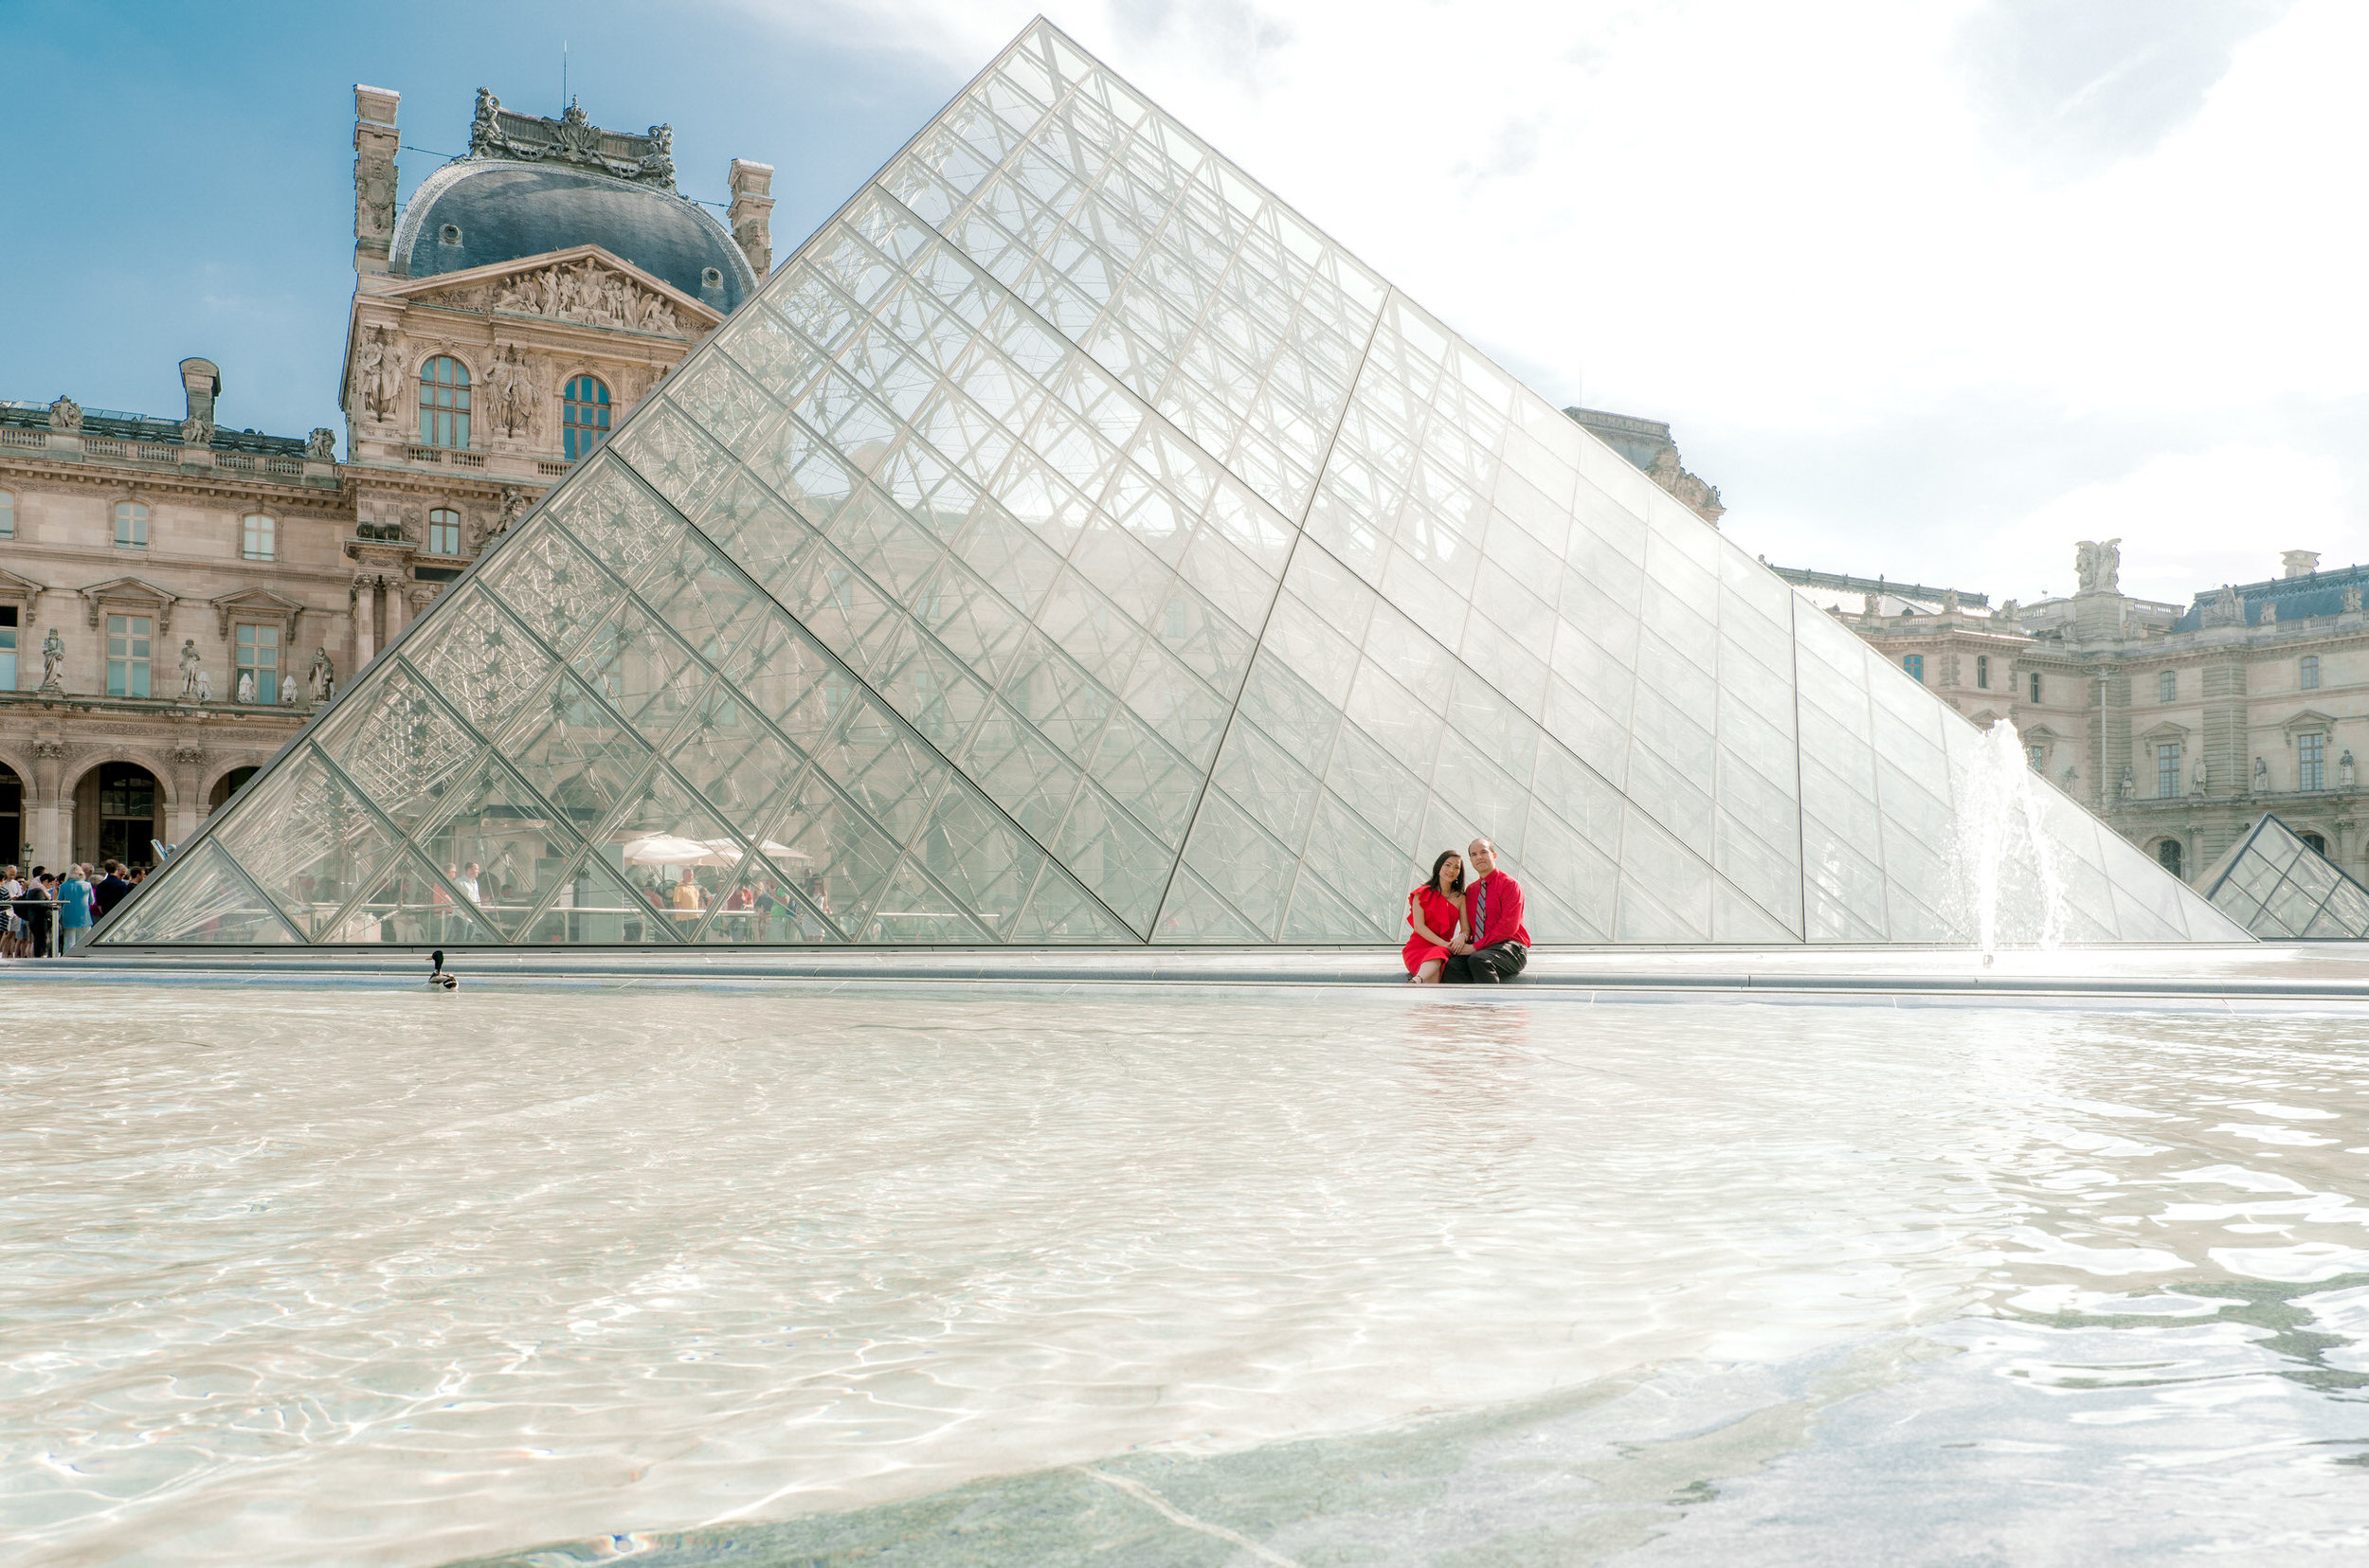 A wedding anniversary celebration at the Louvre Museum in Paris